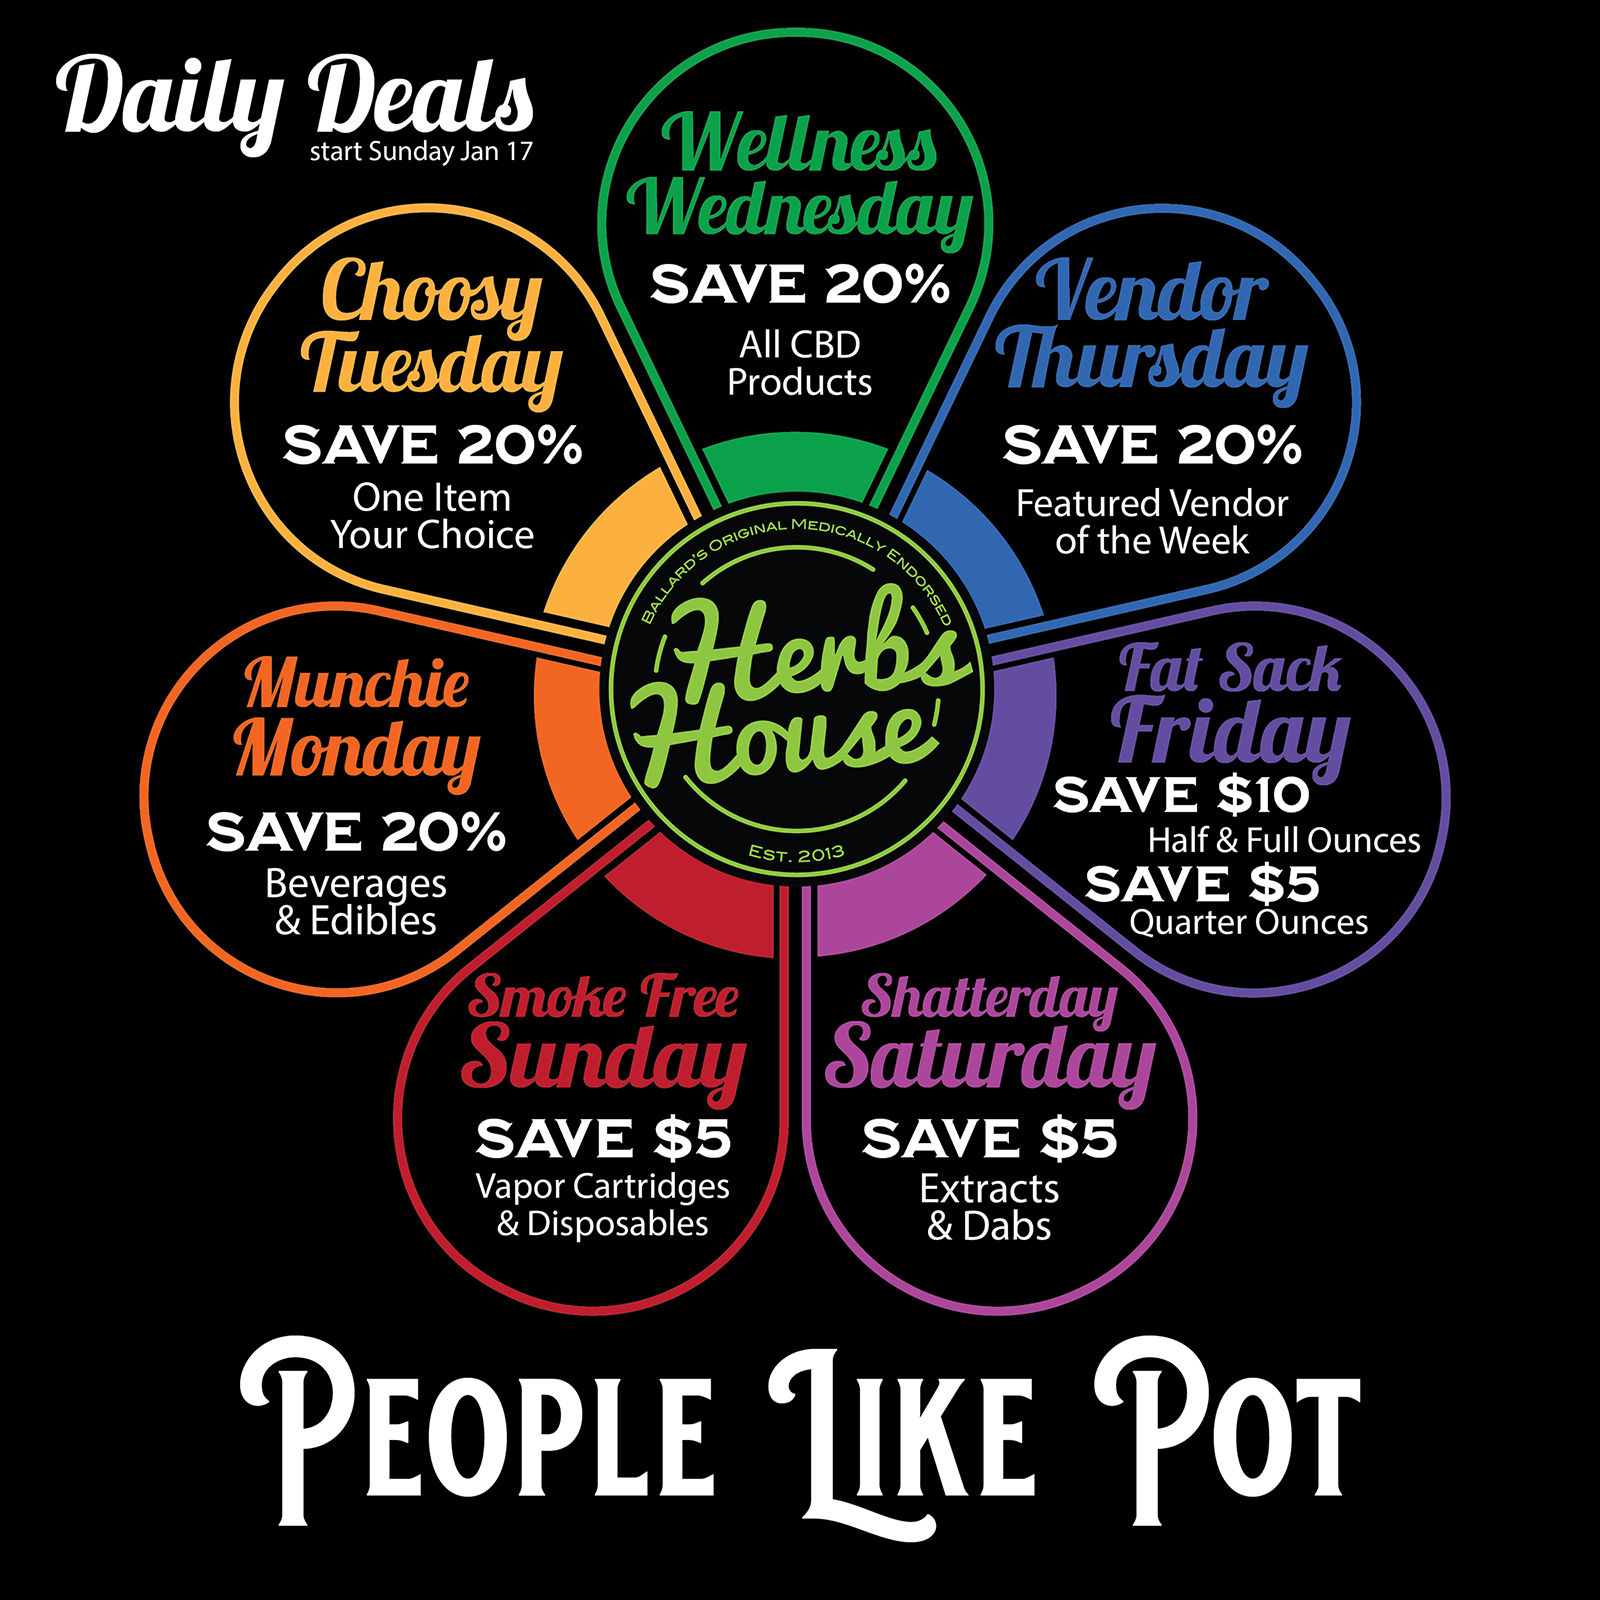 2021 Daily Deals Herbs House